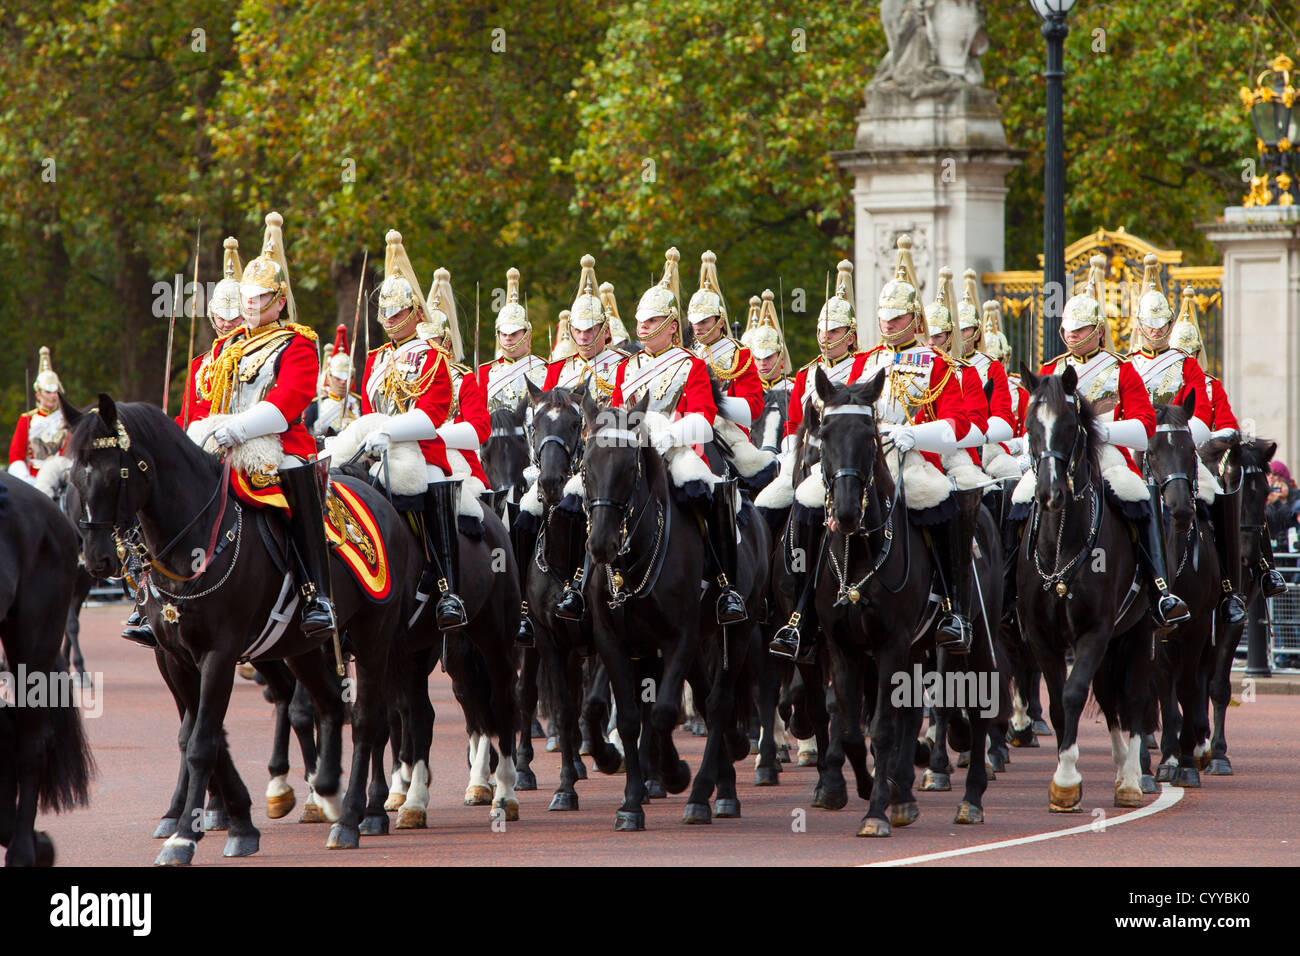 Members of the Household Cavalry - the Life Guards at Buckingham Palace, London England, UK - Stock Image